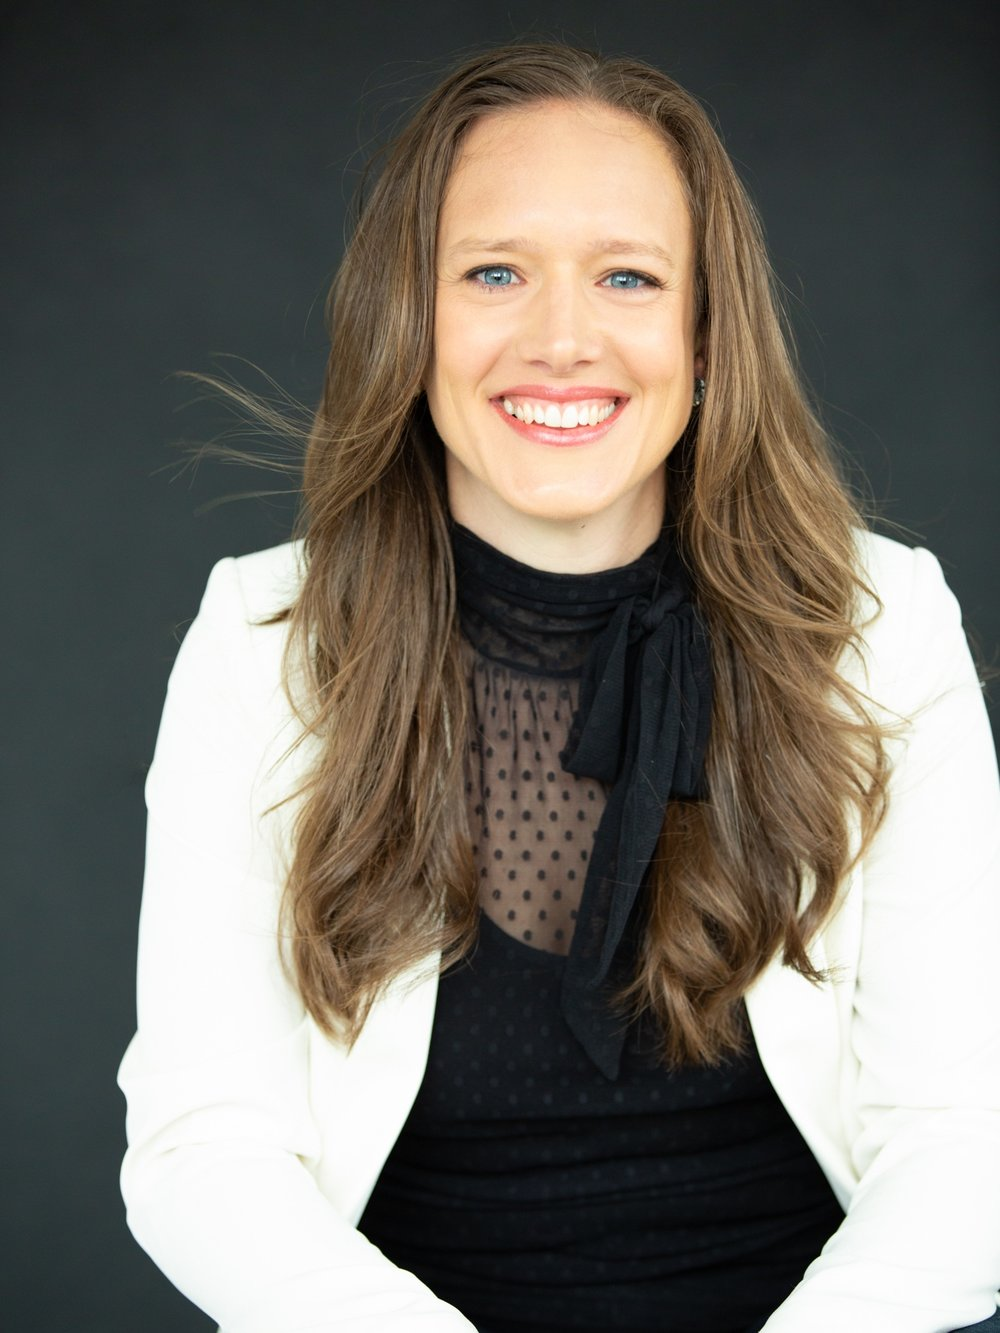 BETH HALL - Therapeutic Counsellor , Coach and Sphere GuideFounder of Architect Your Life, Beth Hall is surgical in her ability to help clients reframe life's challenges into opportunities. She has a linear, logical and creative mind, crossed with a deeply open and compassionate heart. She helps founders, creatives - and everyday folks going after big dreams - get laser focused on what matters most to them in life, business, and the impact they bring to the world. In addition to being a therapeutic counsellor and coach, Beth has worked in tech startups, is a fine art photographer and painter, and has a long standing love of science, with a degree in physiology from McGill.